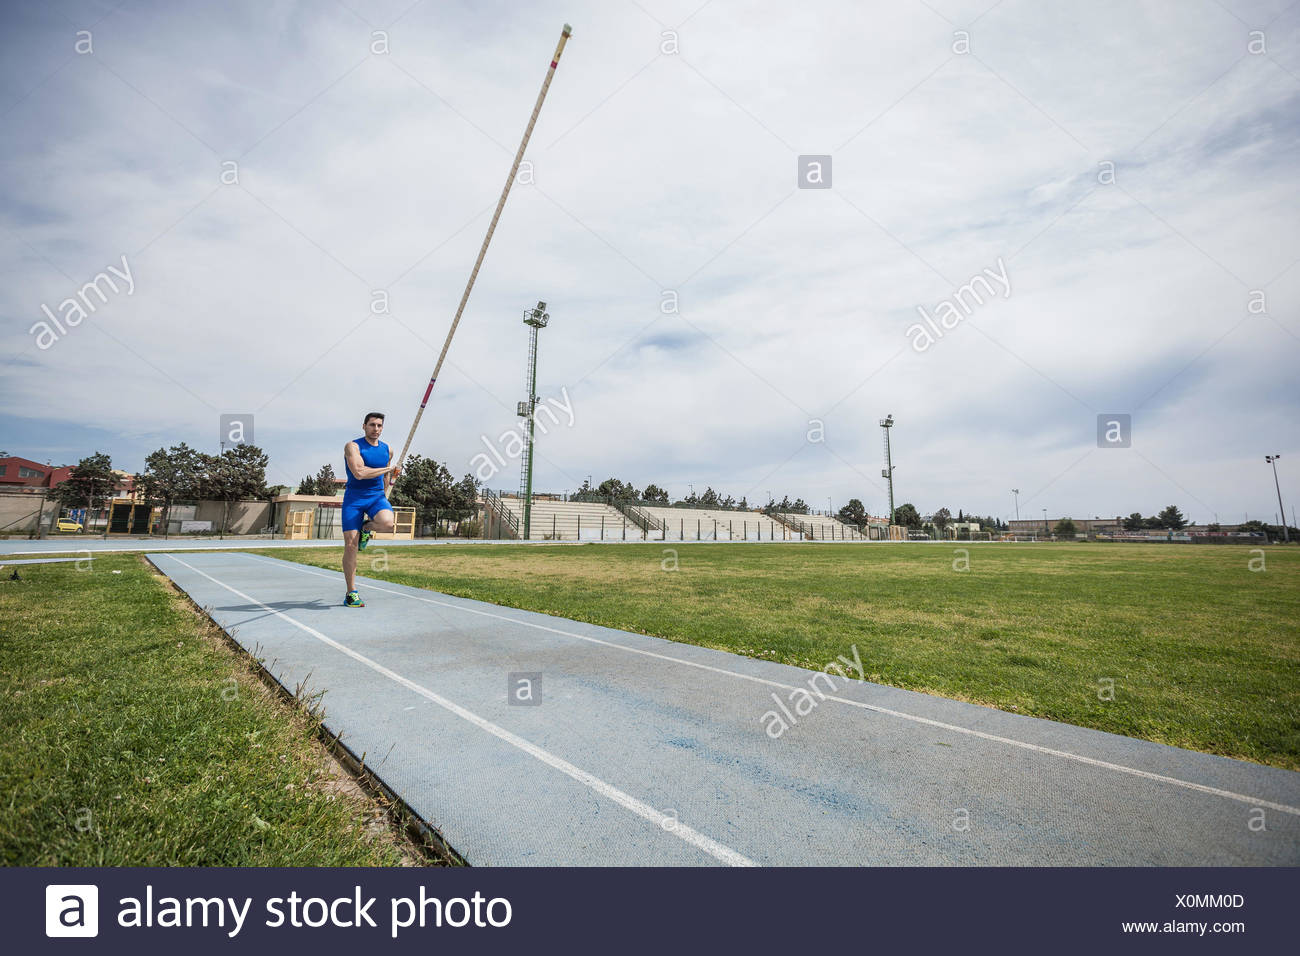 Young male pole vaulter sprinting with pole vault at sport facility - Stock Image